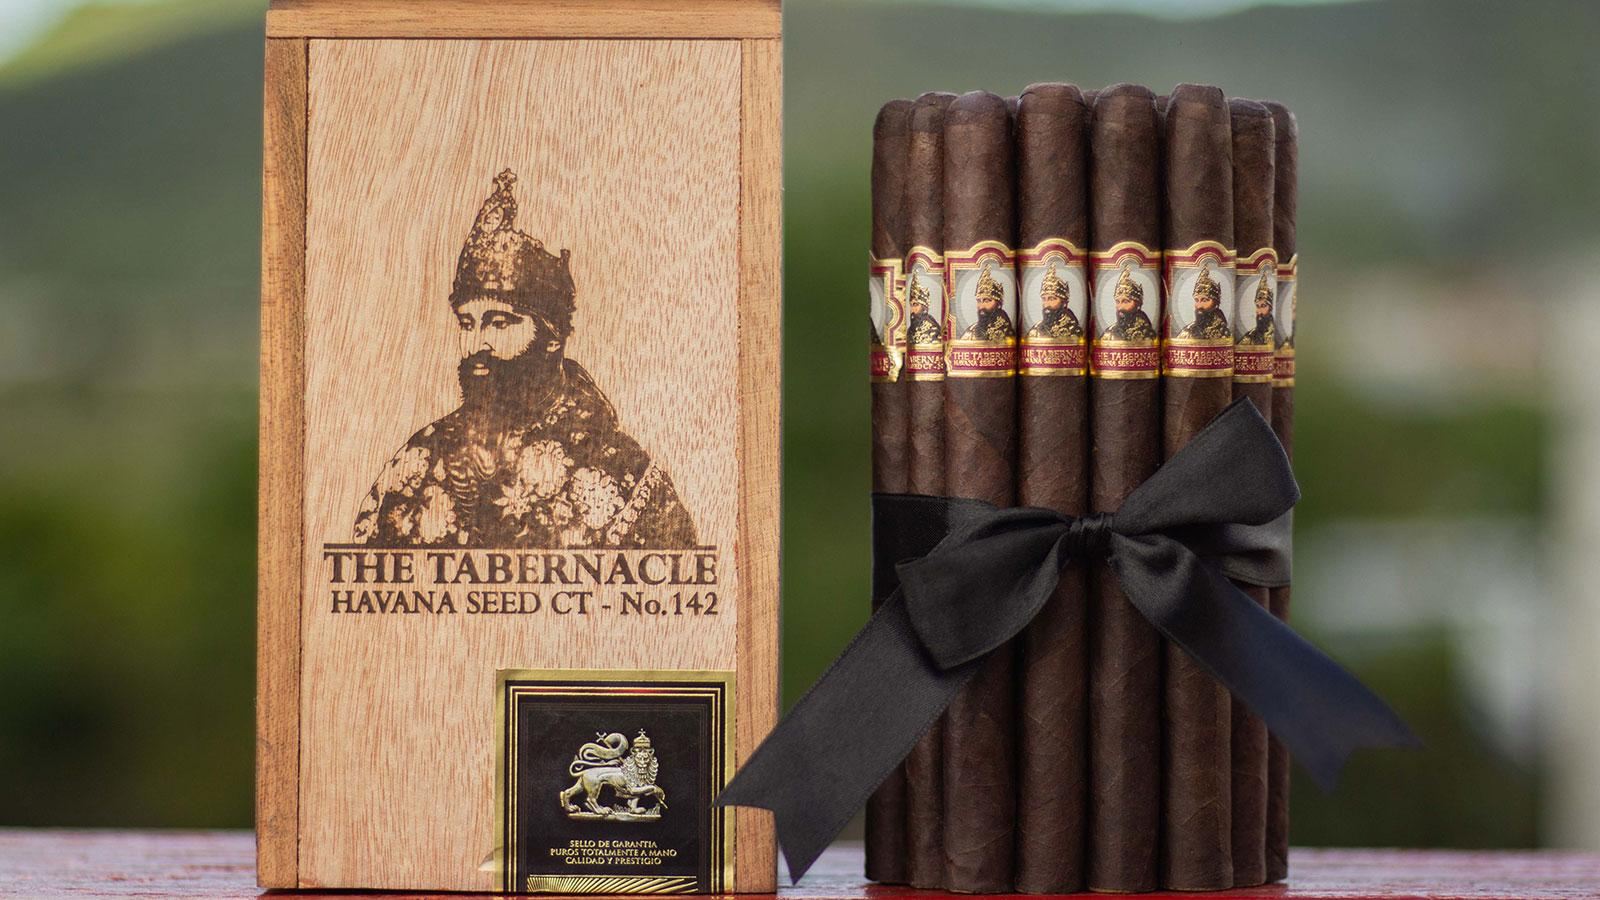 Foundation Adds Lancero to Tabernacle Havana Seed #142 Line